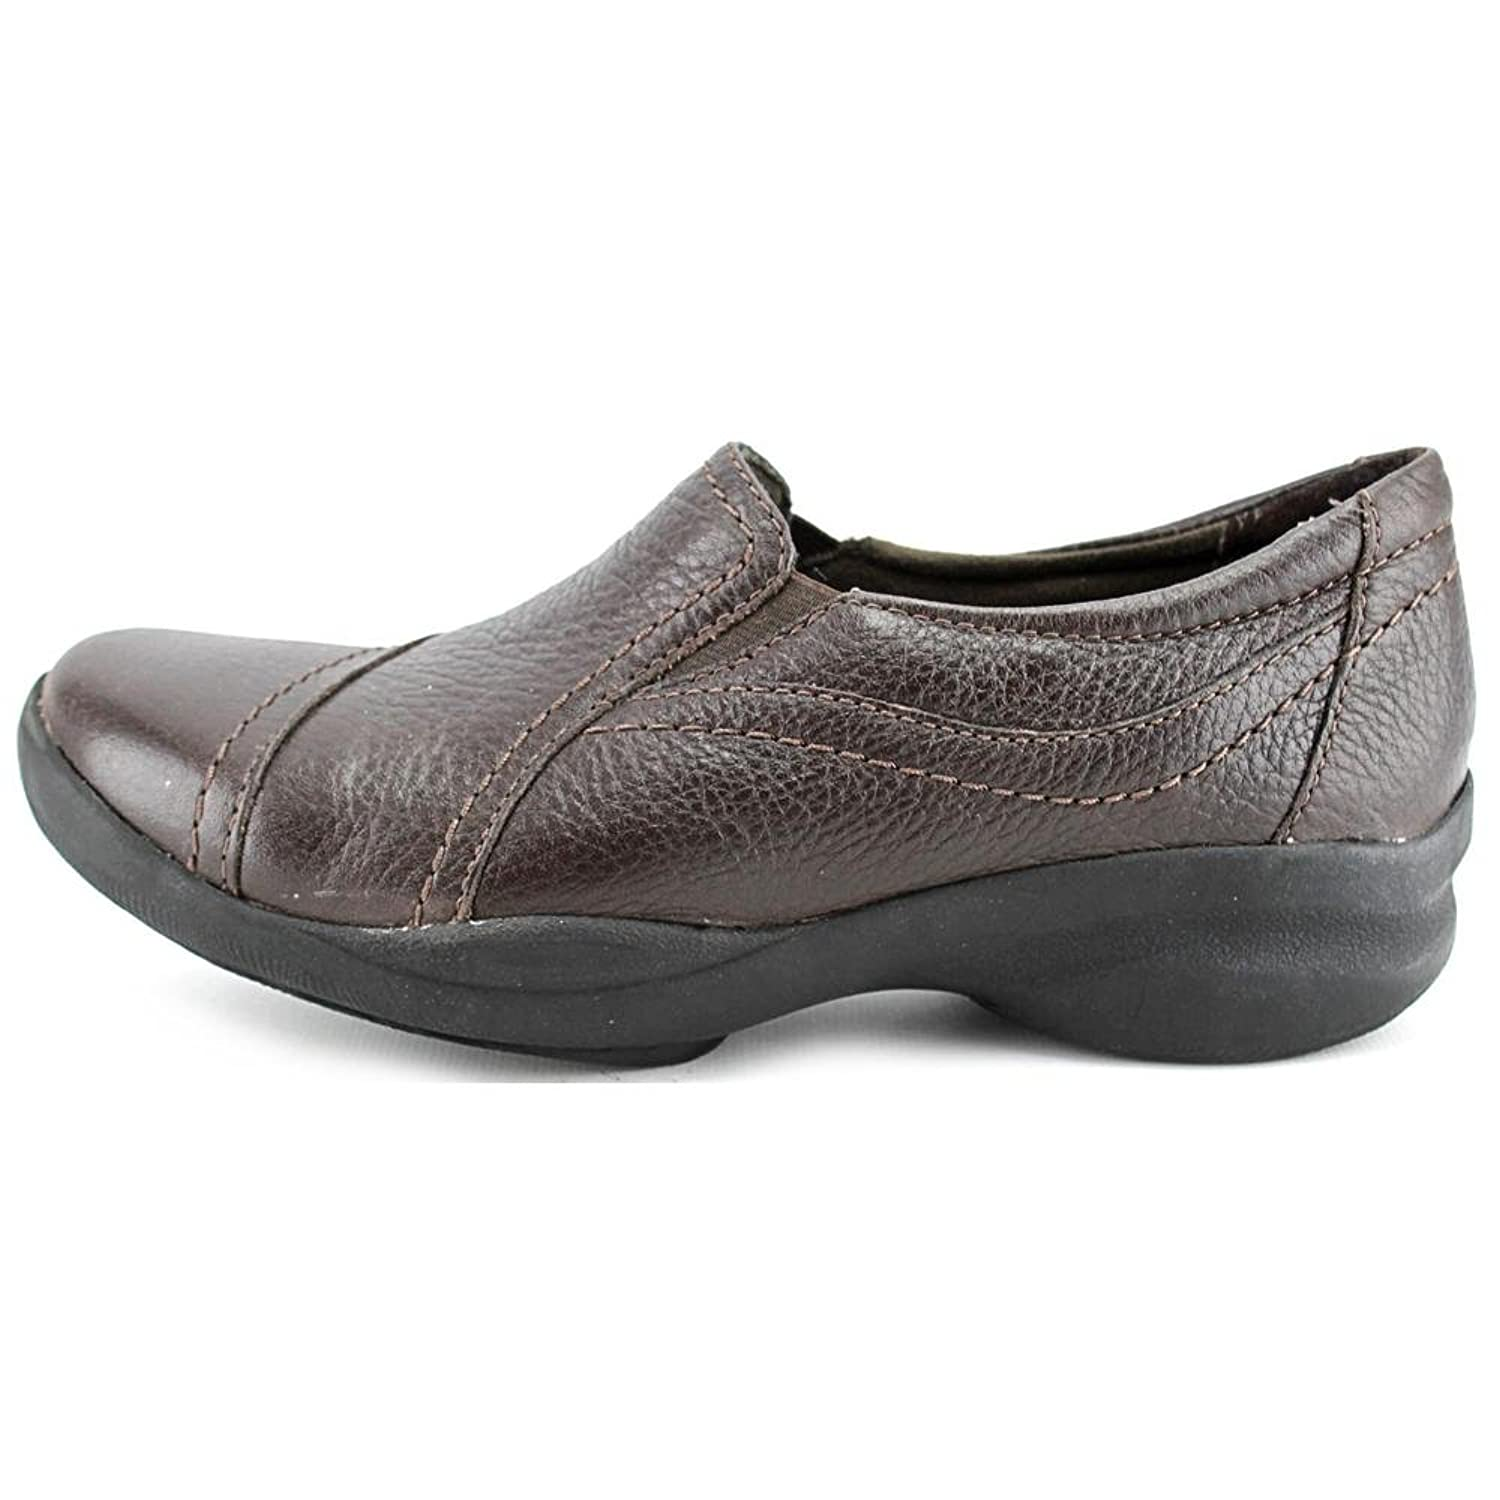 Clarks Women's In Motion Kick Slip-On Loafer, Brown, Size 5.0